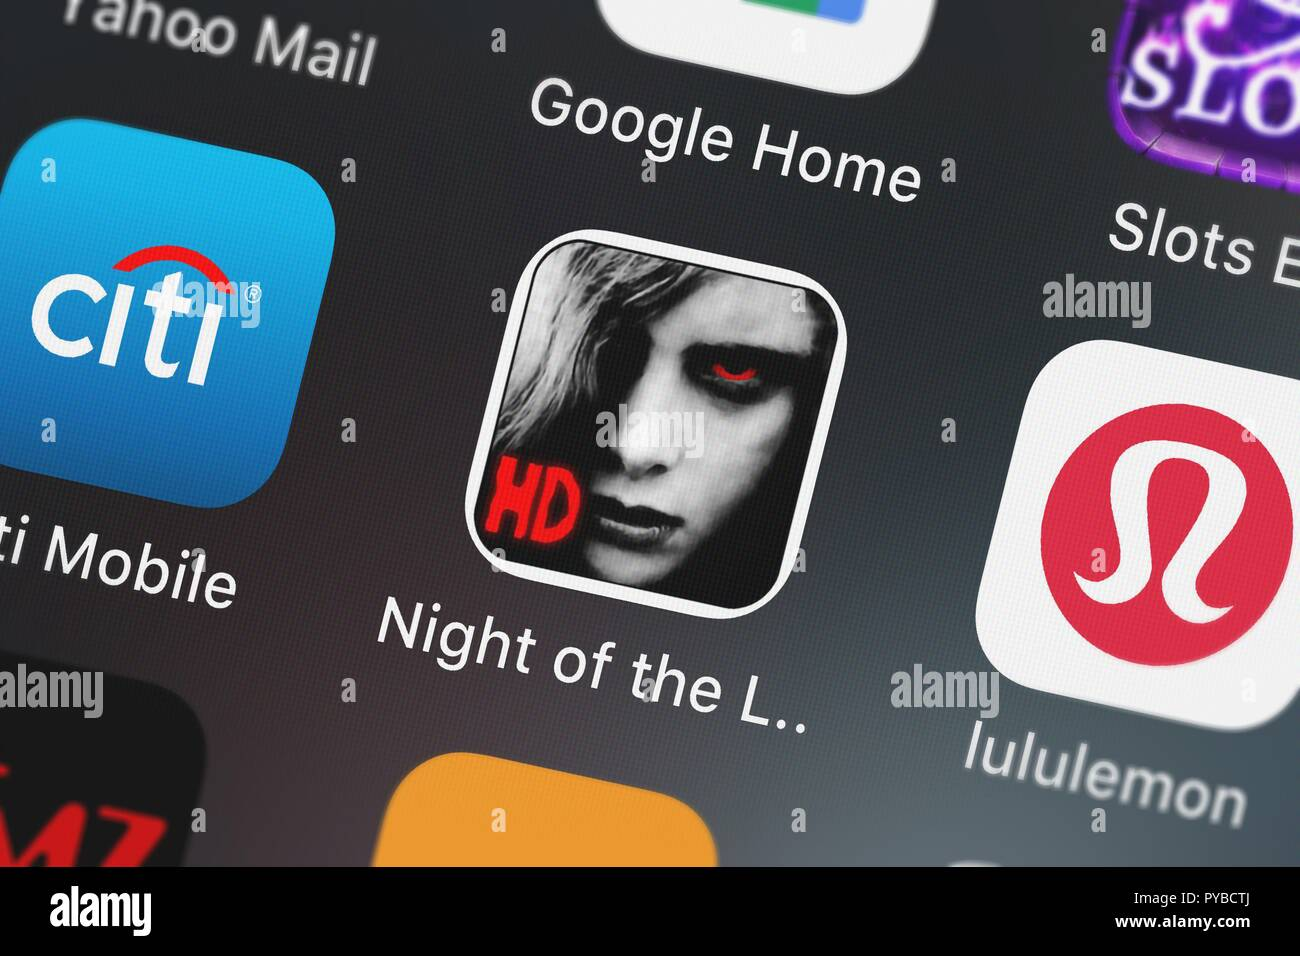 London, United Kingdom - October 26, 2018: Screenshot of the mobile app Night of the Living Dead Defense from MindJolt. Stock Photo